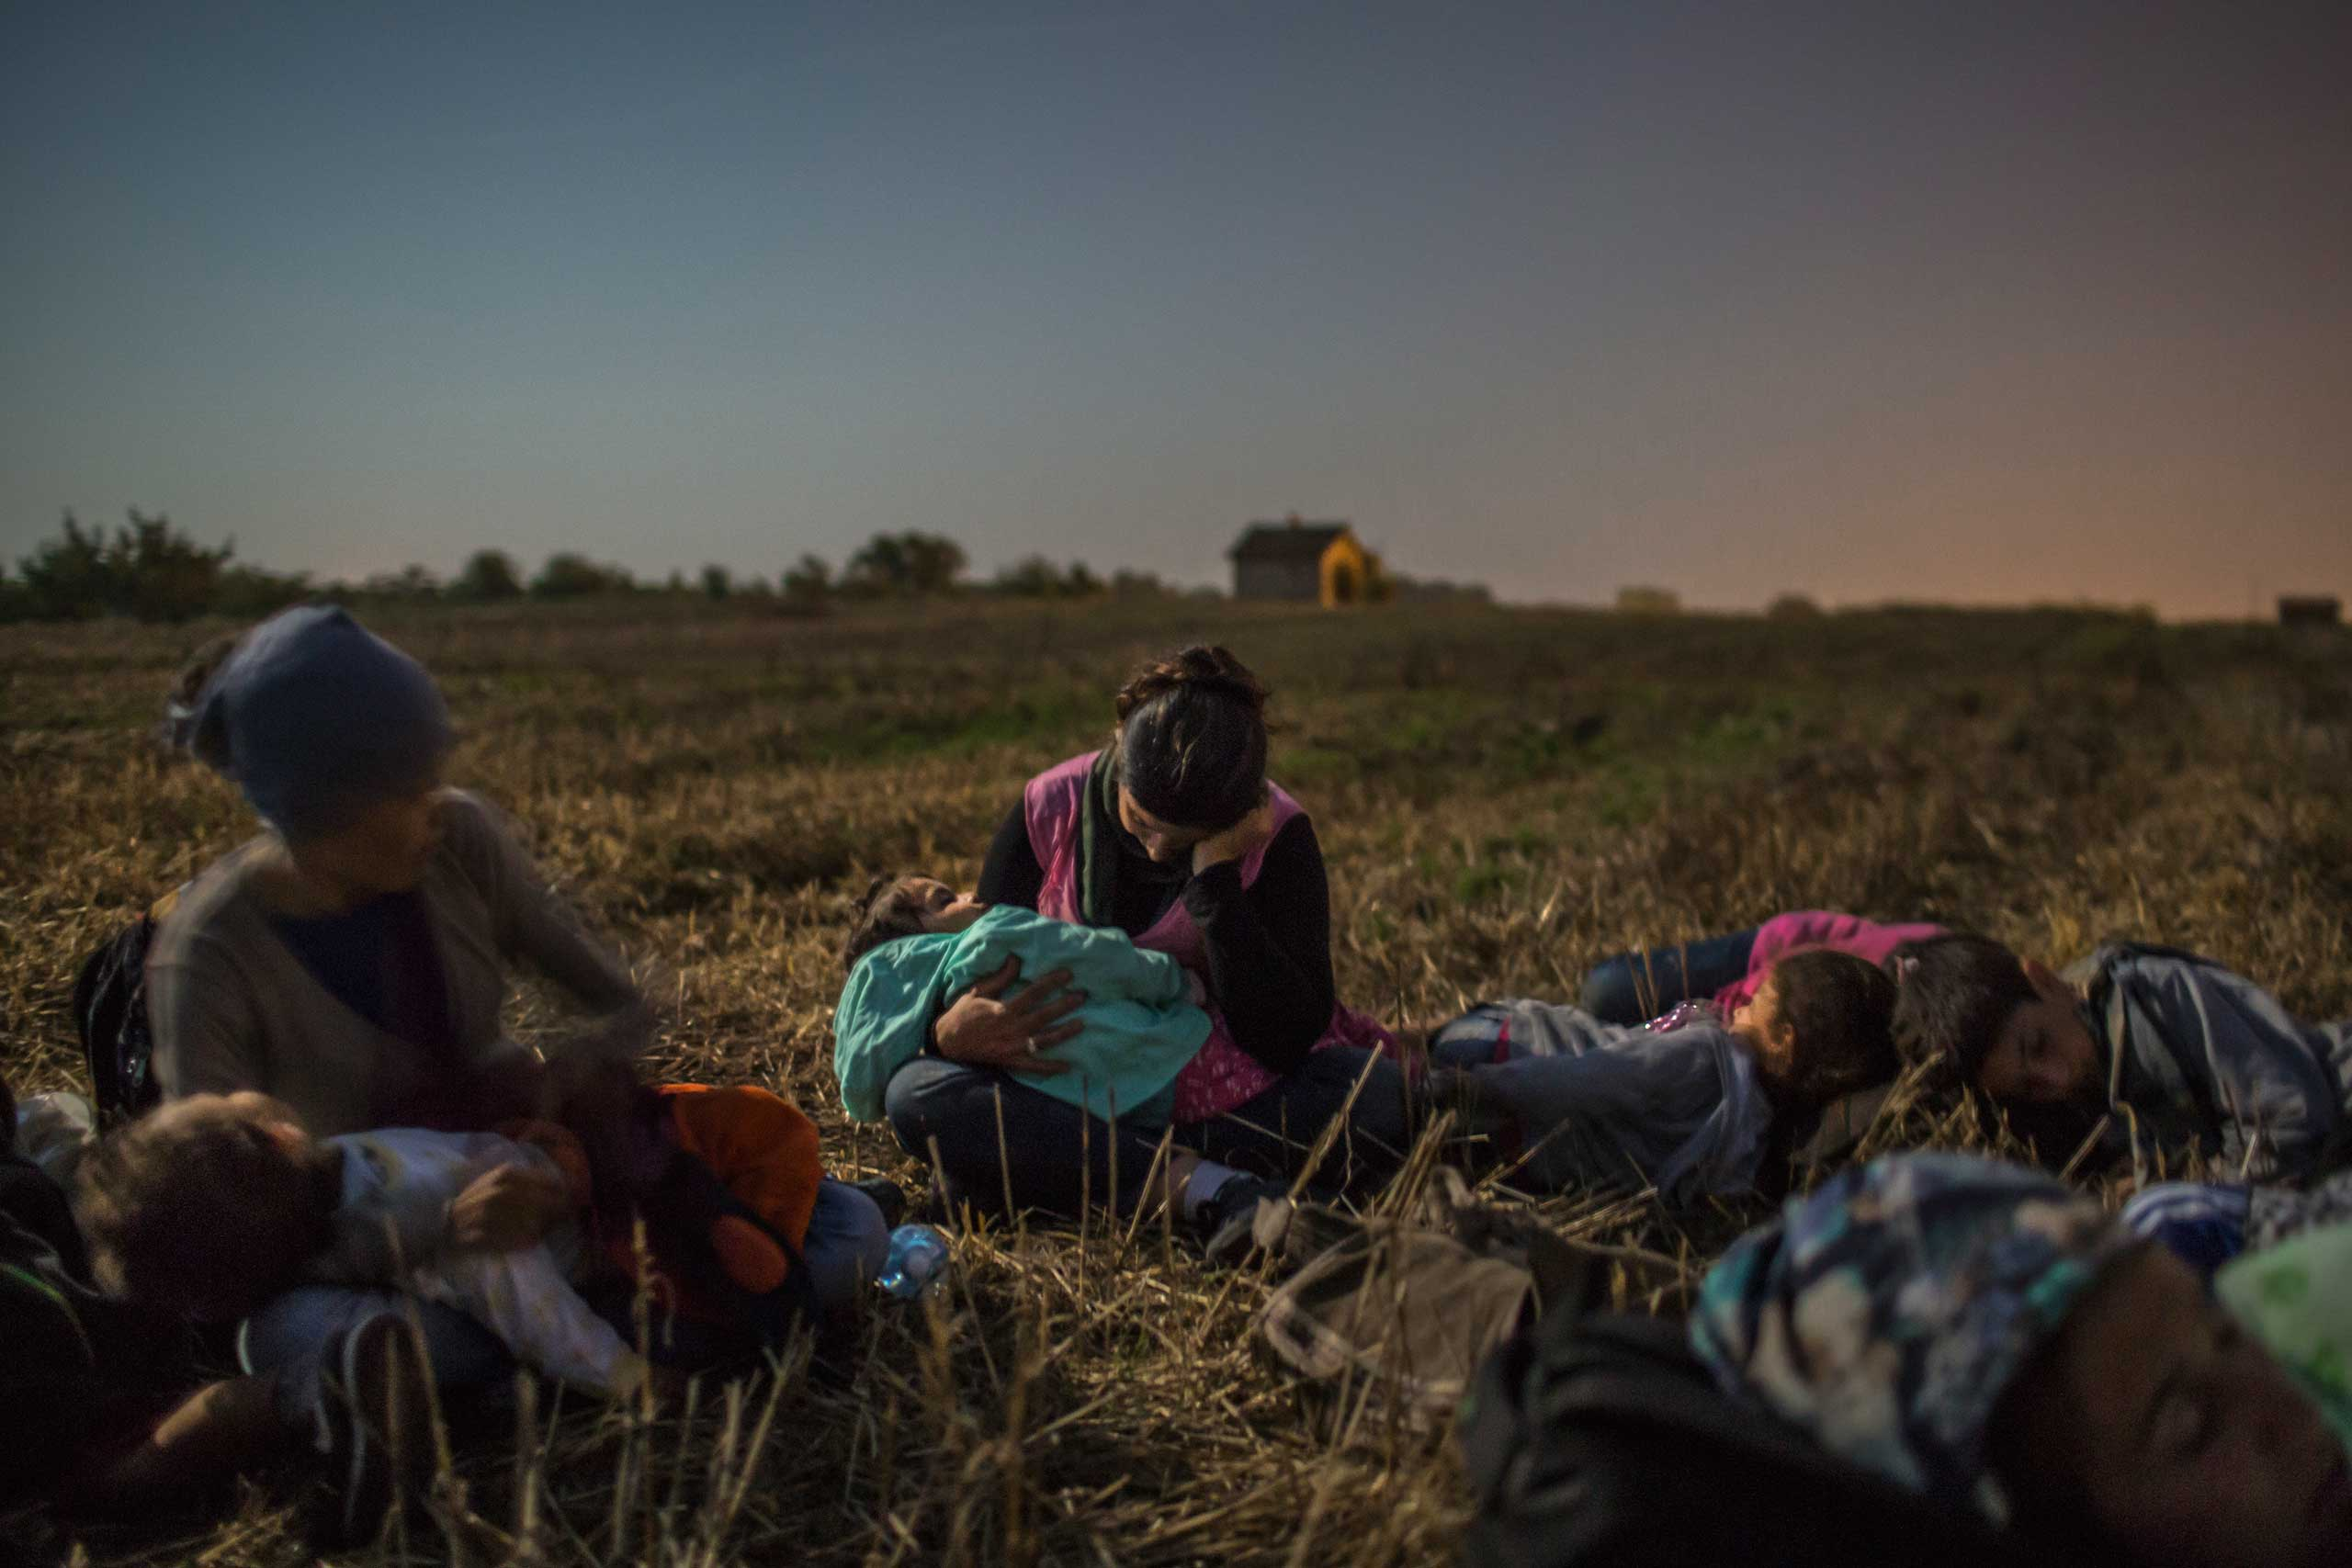 The New York Times: A Family Swept Up in the Migrant TideRojin Shikho, center, wife of Farid Majid, sleeps with her daughter, Widad, among other relatives in a wheat field as they wait to cross barbed wire from Horgos, Serbia, into Hungary, Aug. 31, 2015.